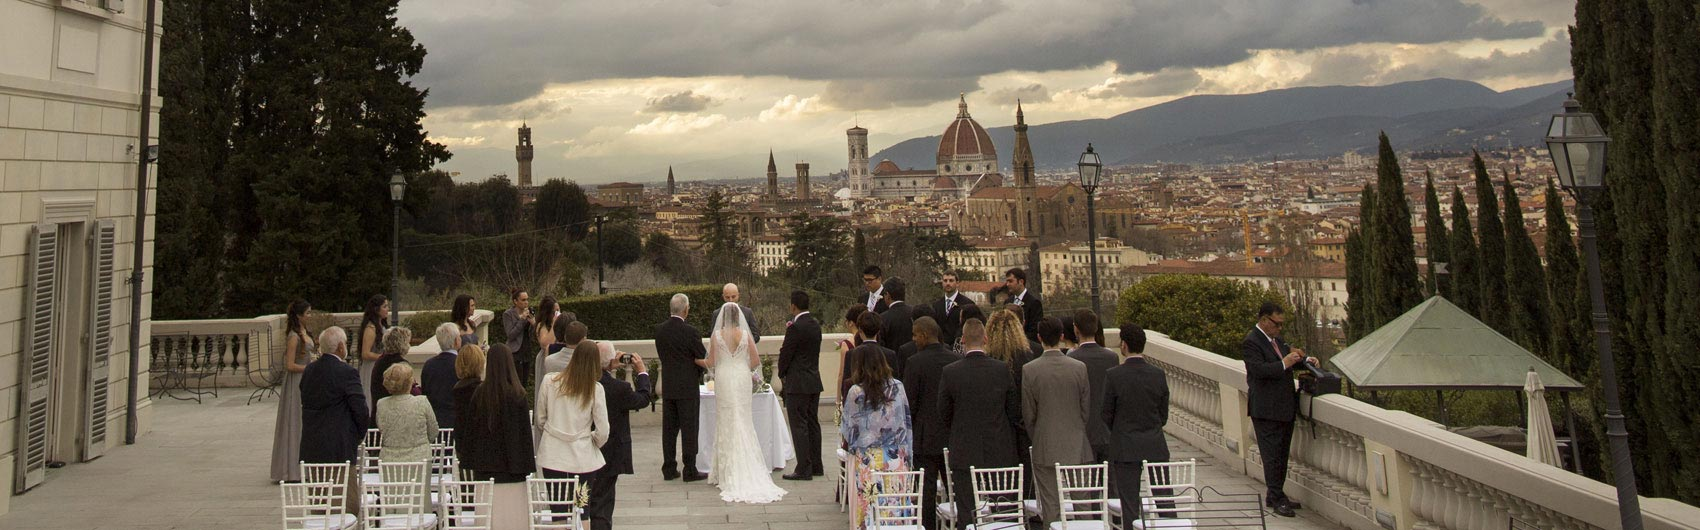 weddings-florence